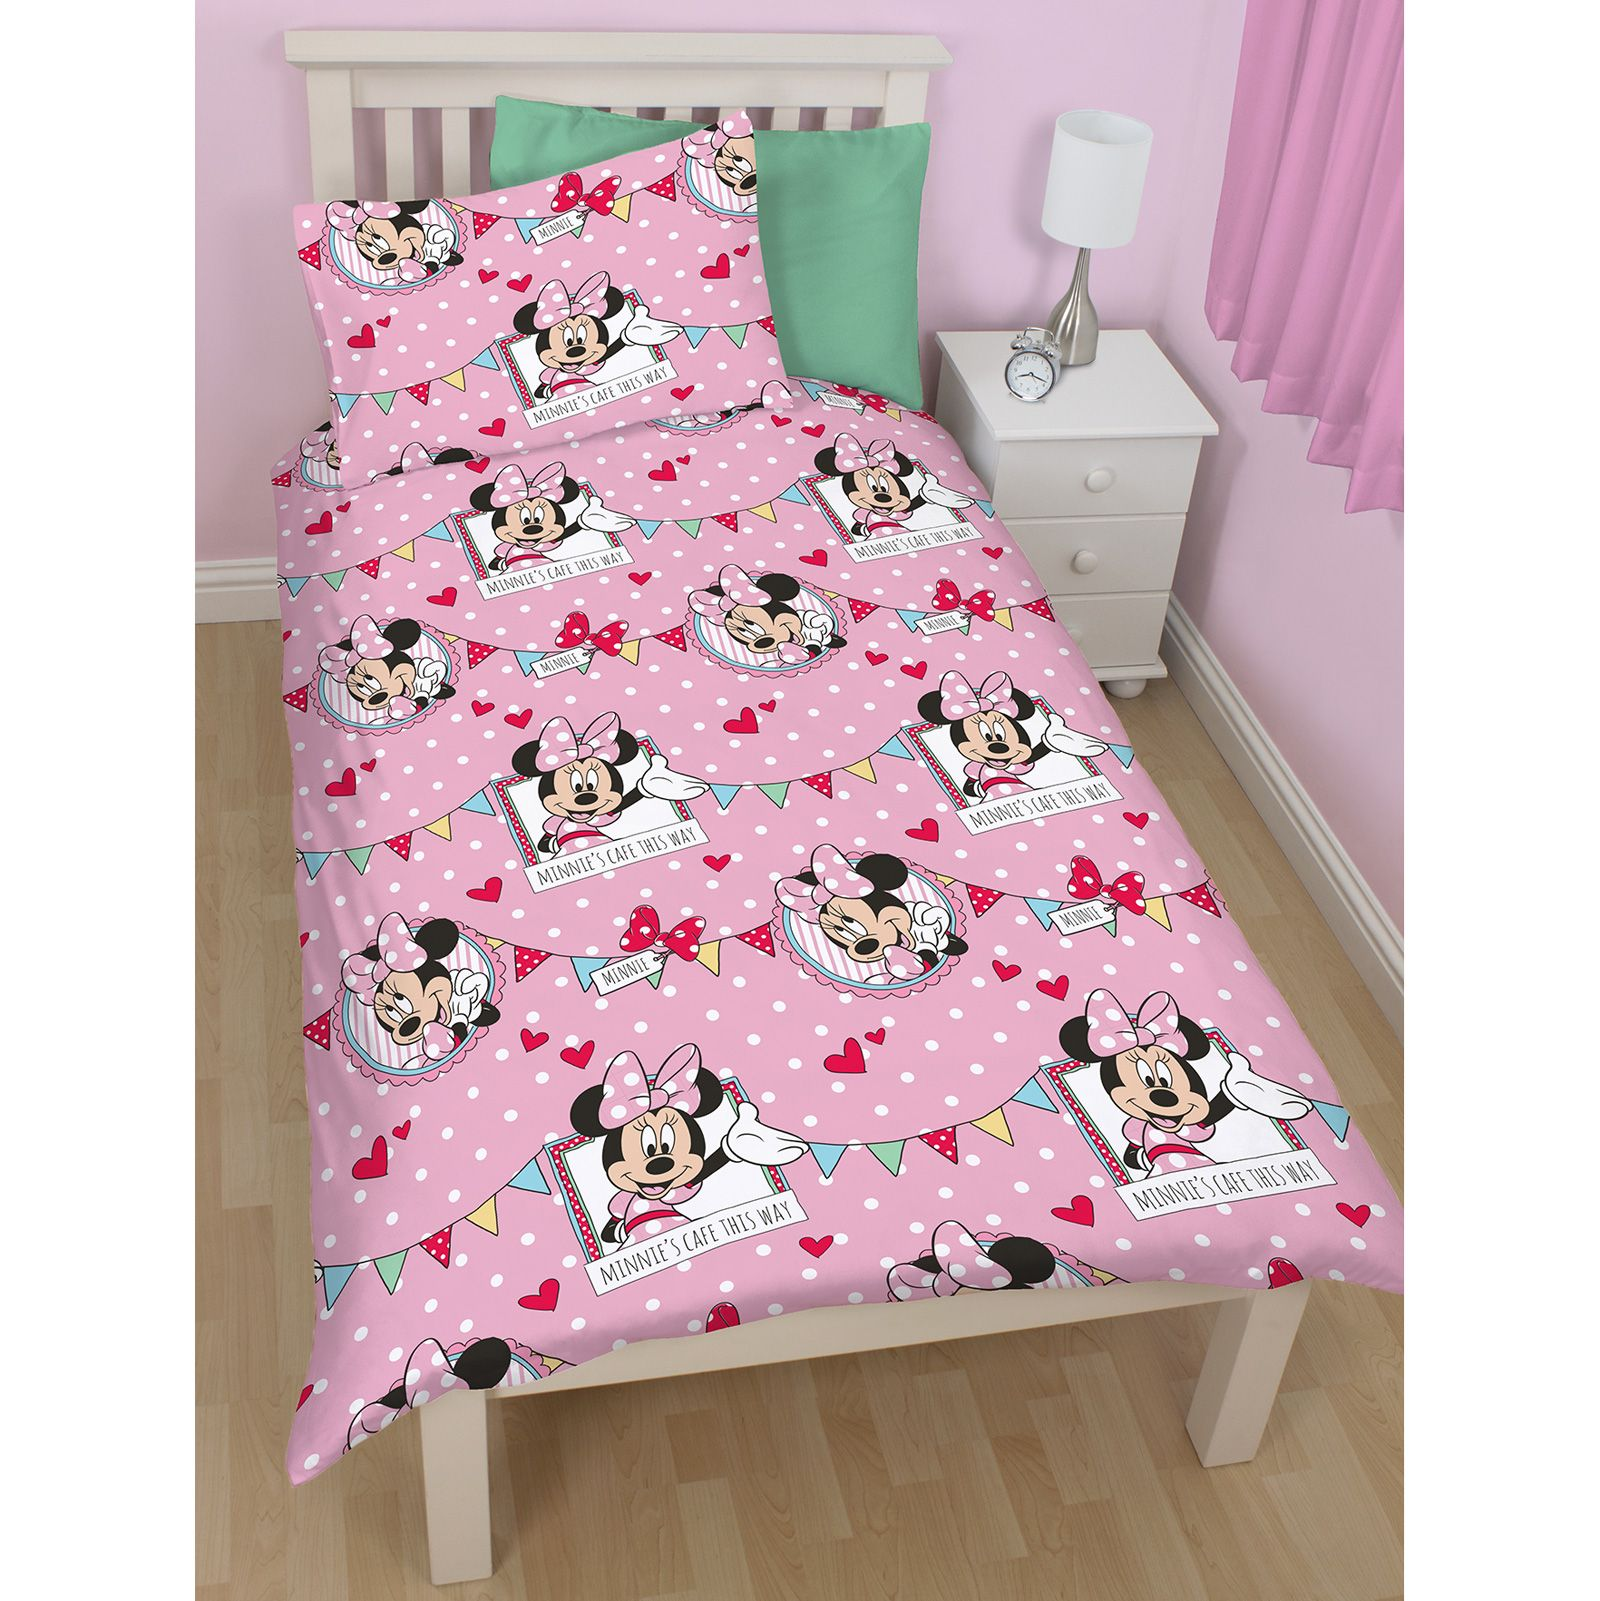 MINNIE-MOUSE-DUVET-COVERS-KIDS-GIRLS-BEDDING-SINGLE-DOUBLE-JUNIOR thumbnail 7